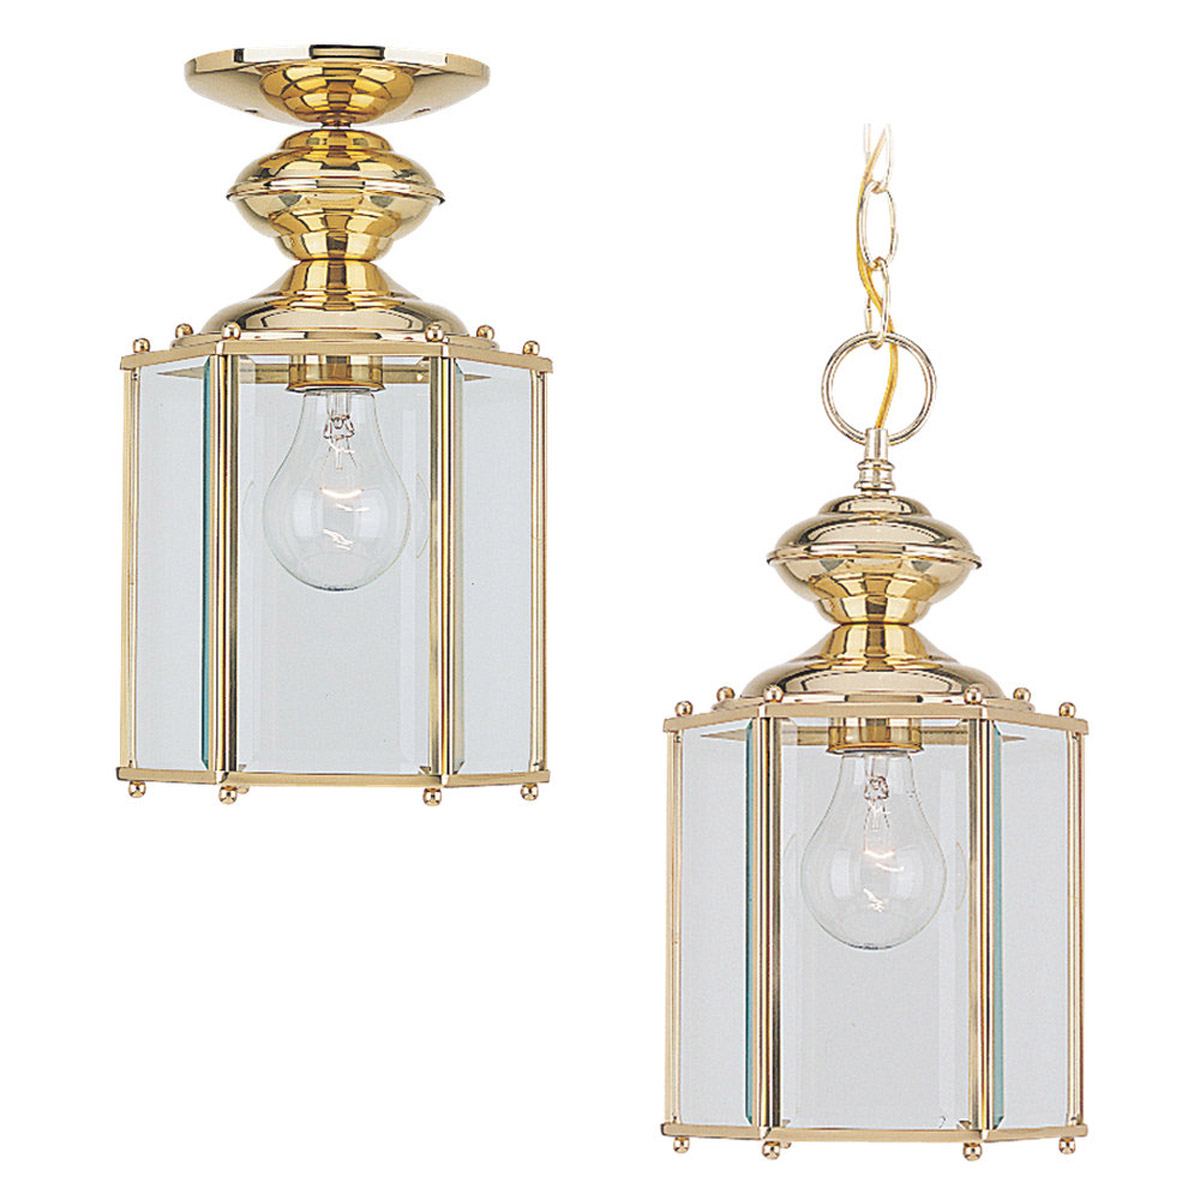 Sea Gull Lighting Classico 1 Light Outdoor Pendant in Polished Brass 6008-02 photo